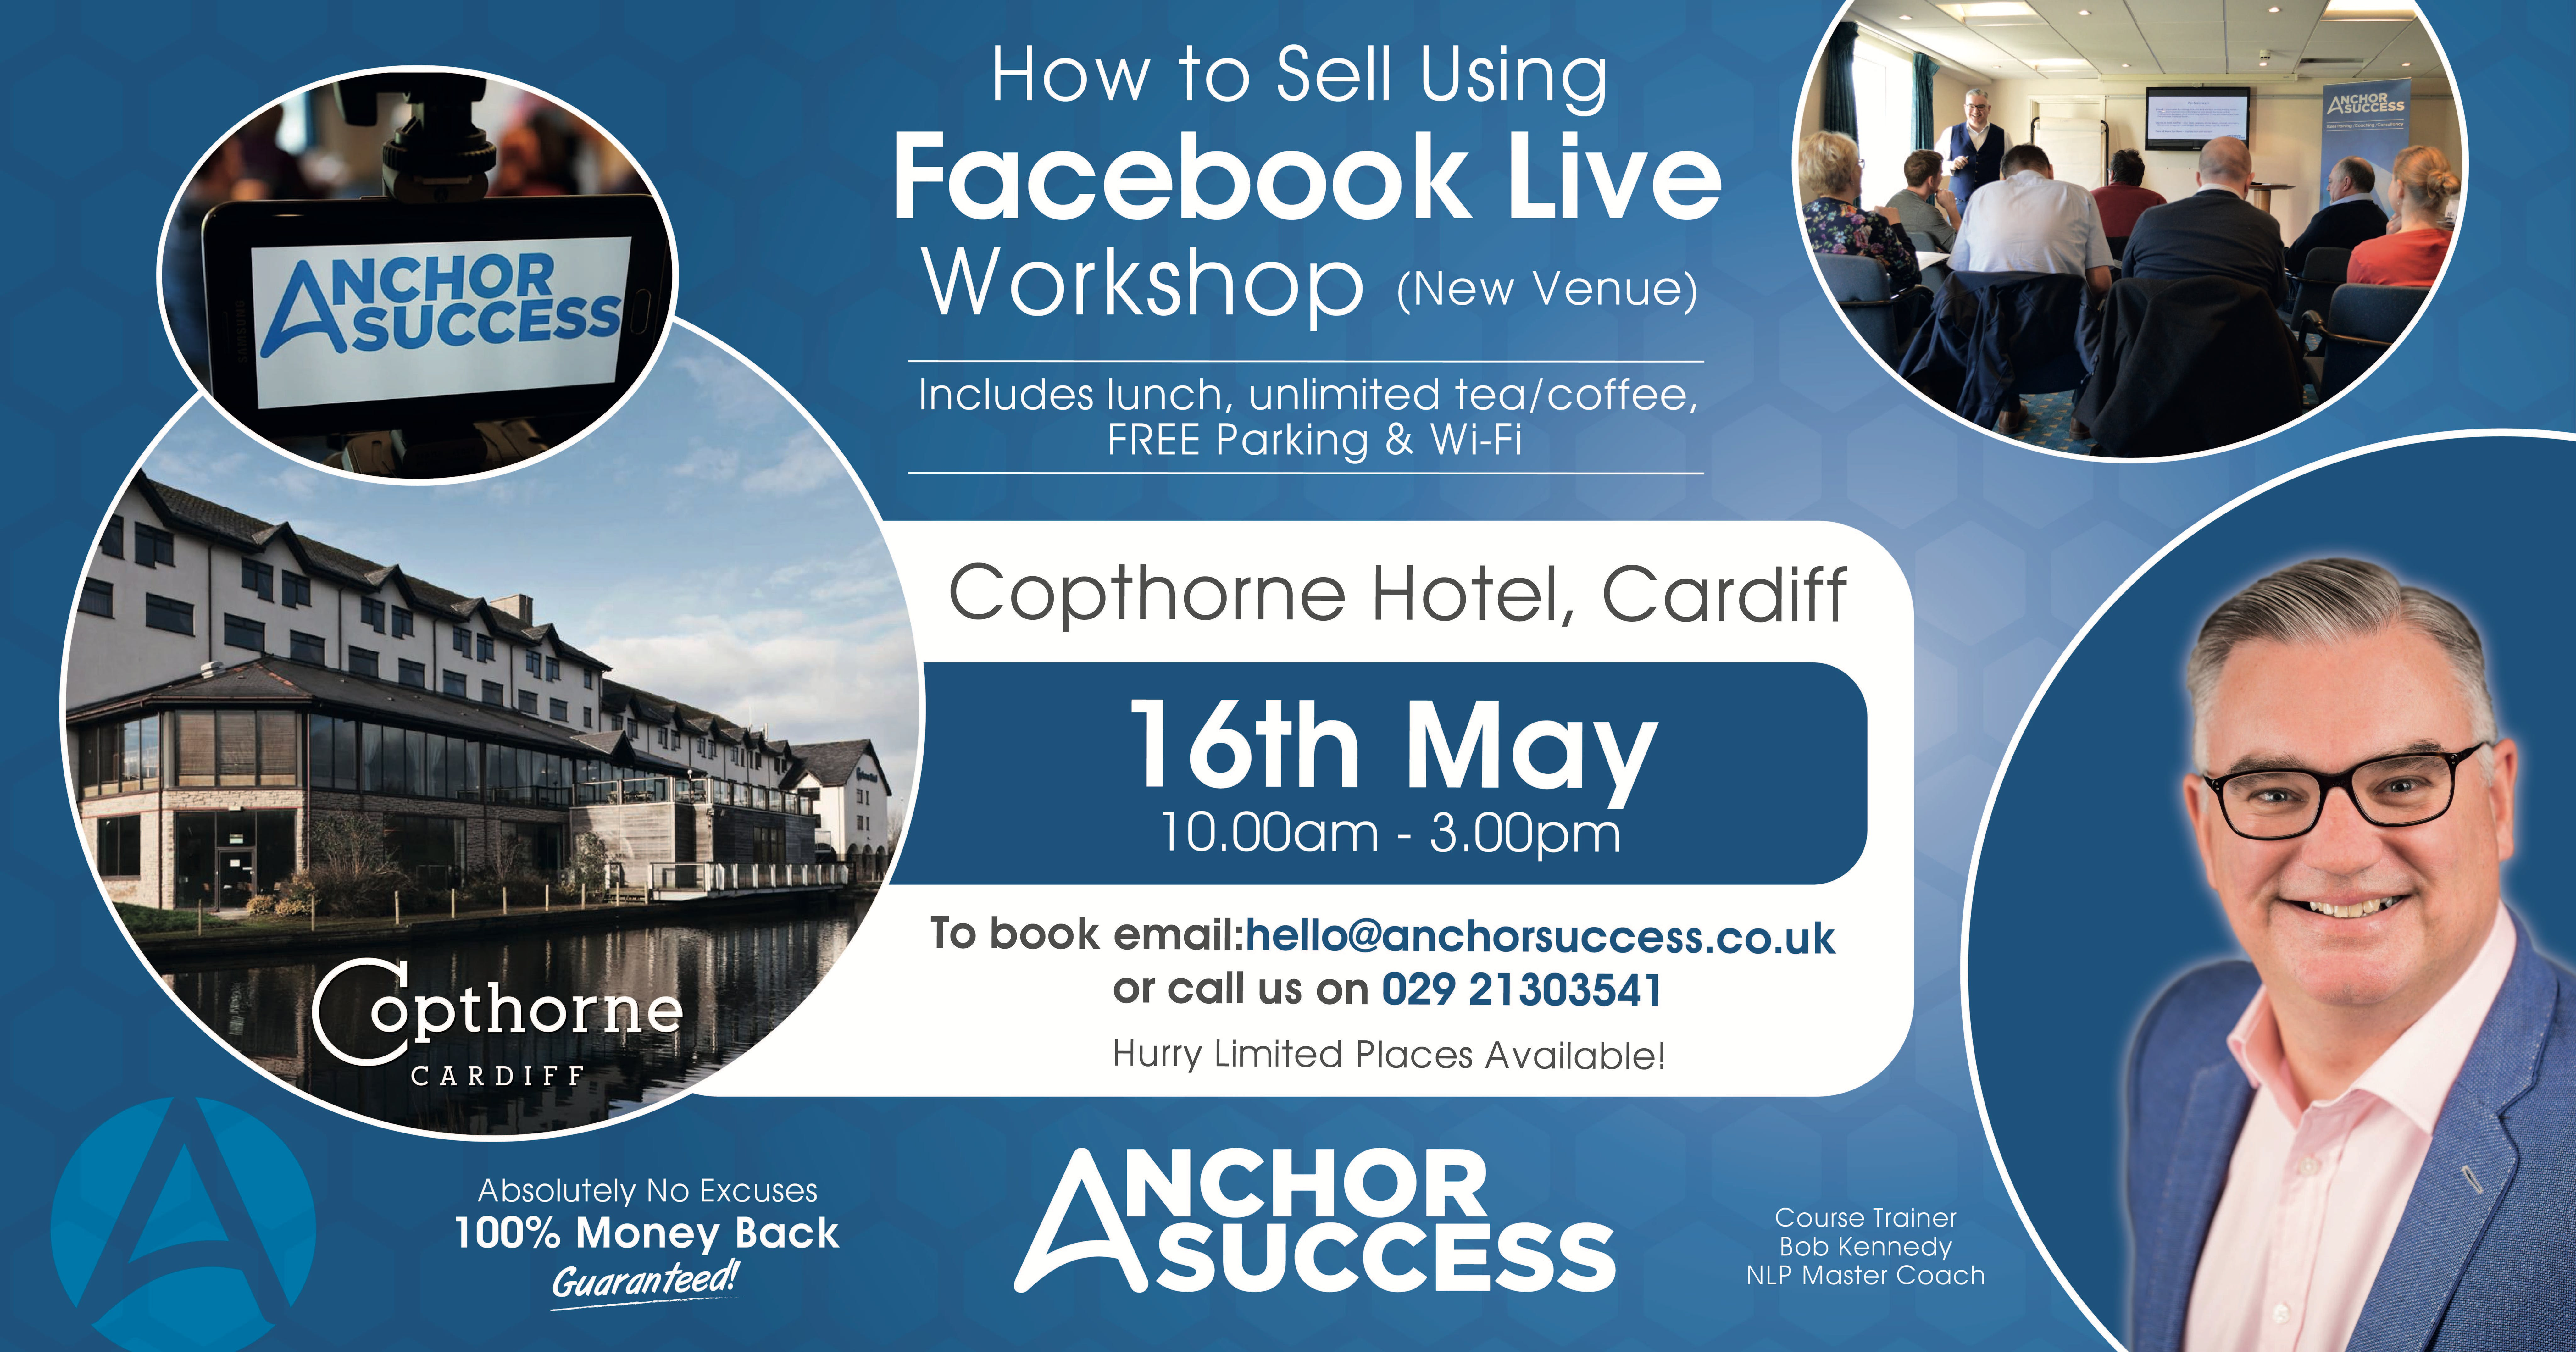 Learn How To Sell Using Facebook Live at Copthorne Hotel